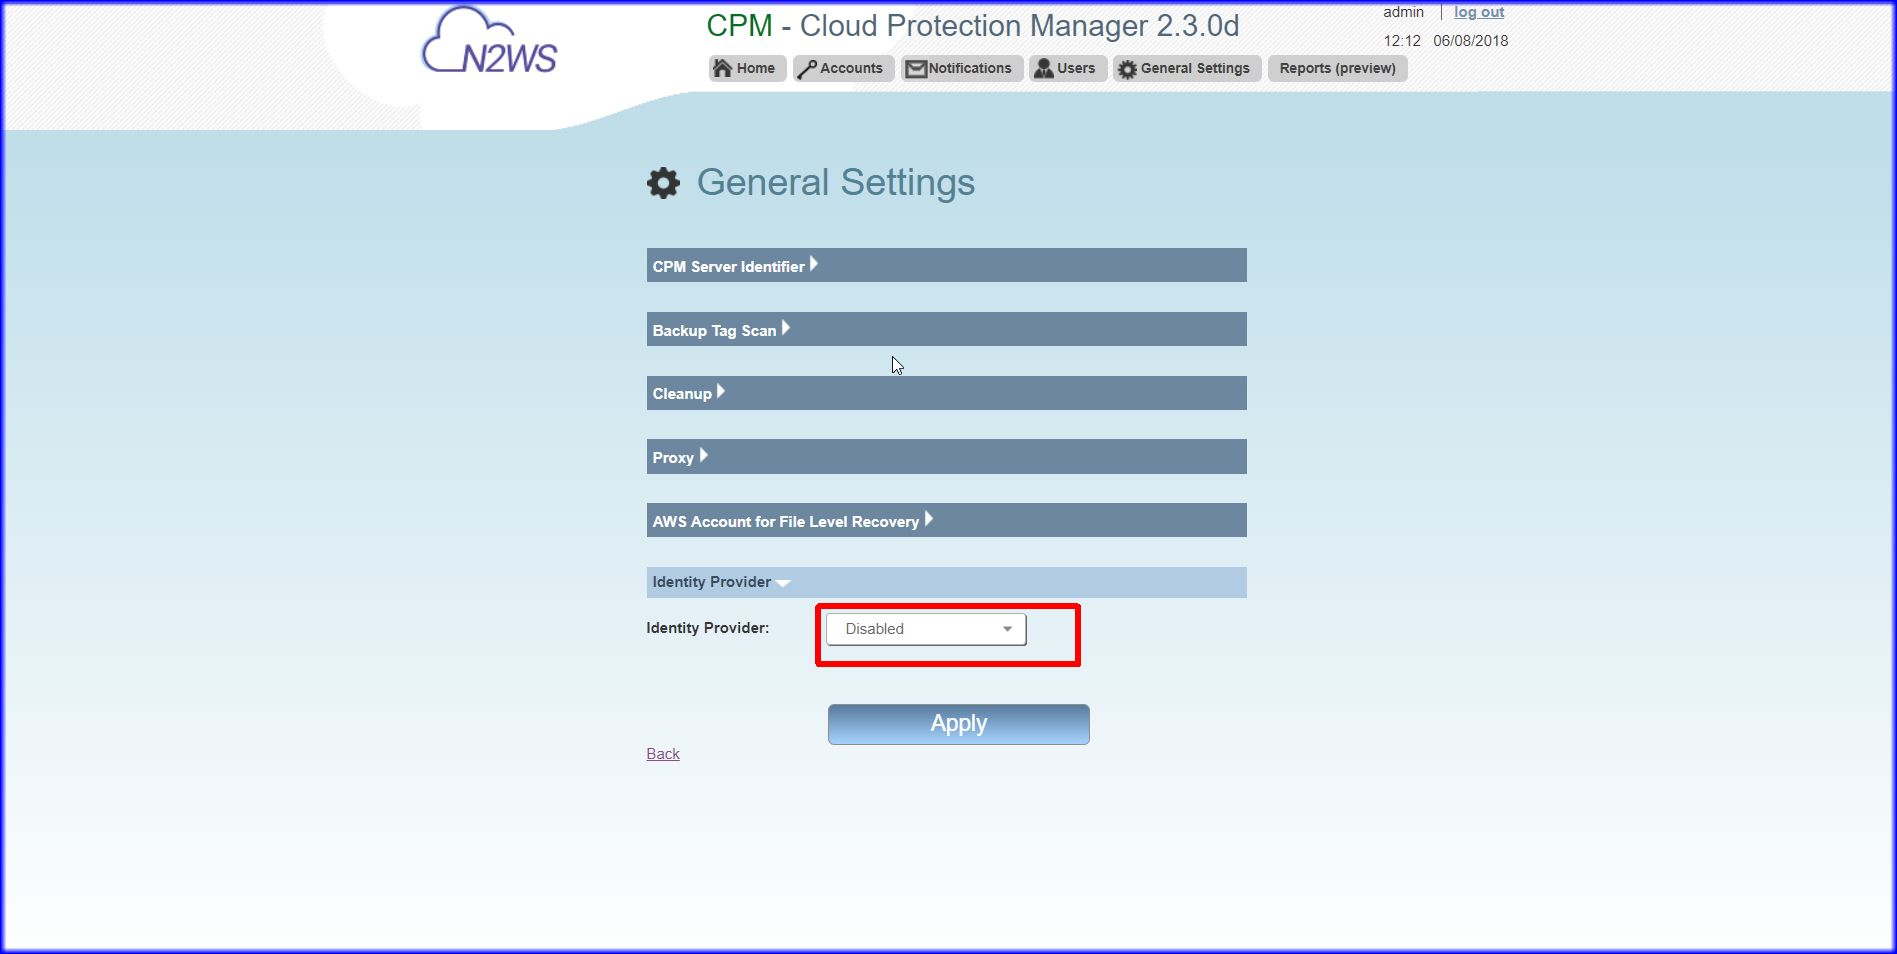 How to Integrate Okta Single Sign on with Cloud Protection